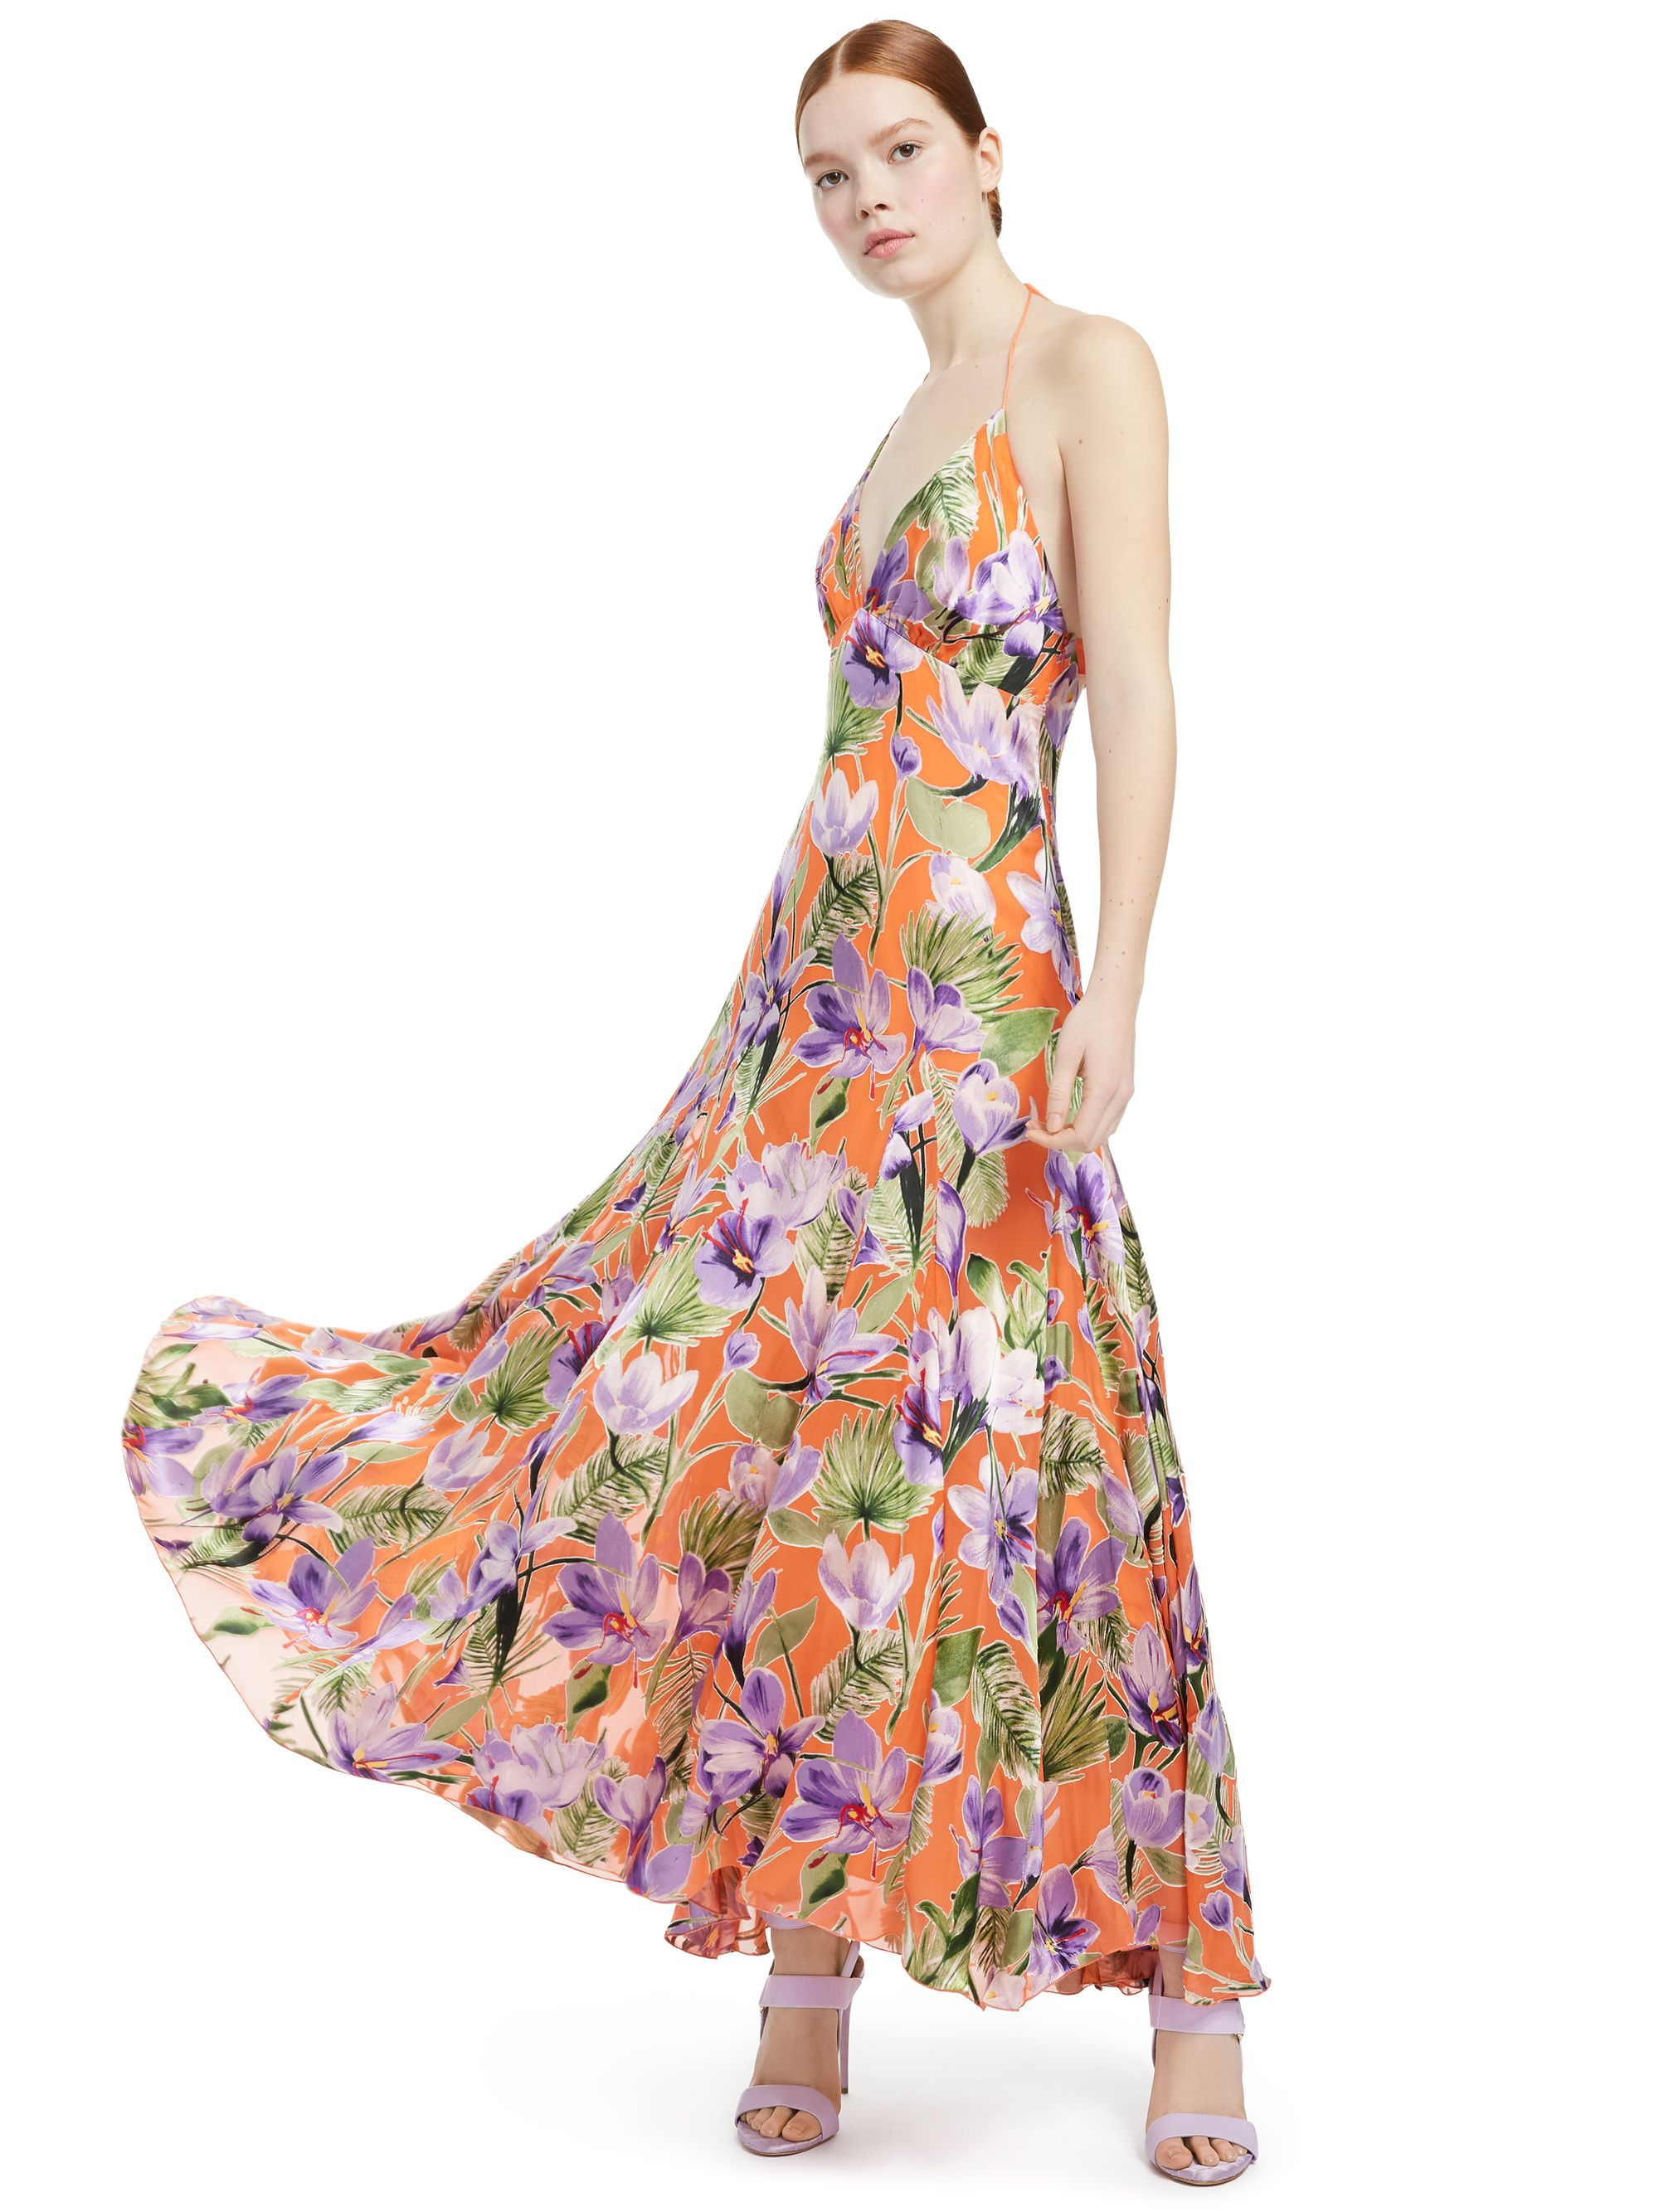 71c5b7ff88f9 Alice + Olivia HETTY FLORAL MAXI DRESS in 2019 | Casual Style ...